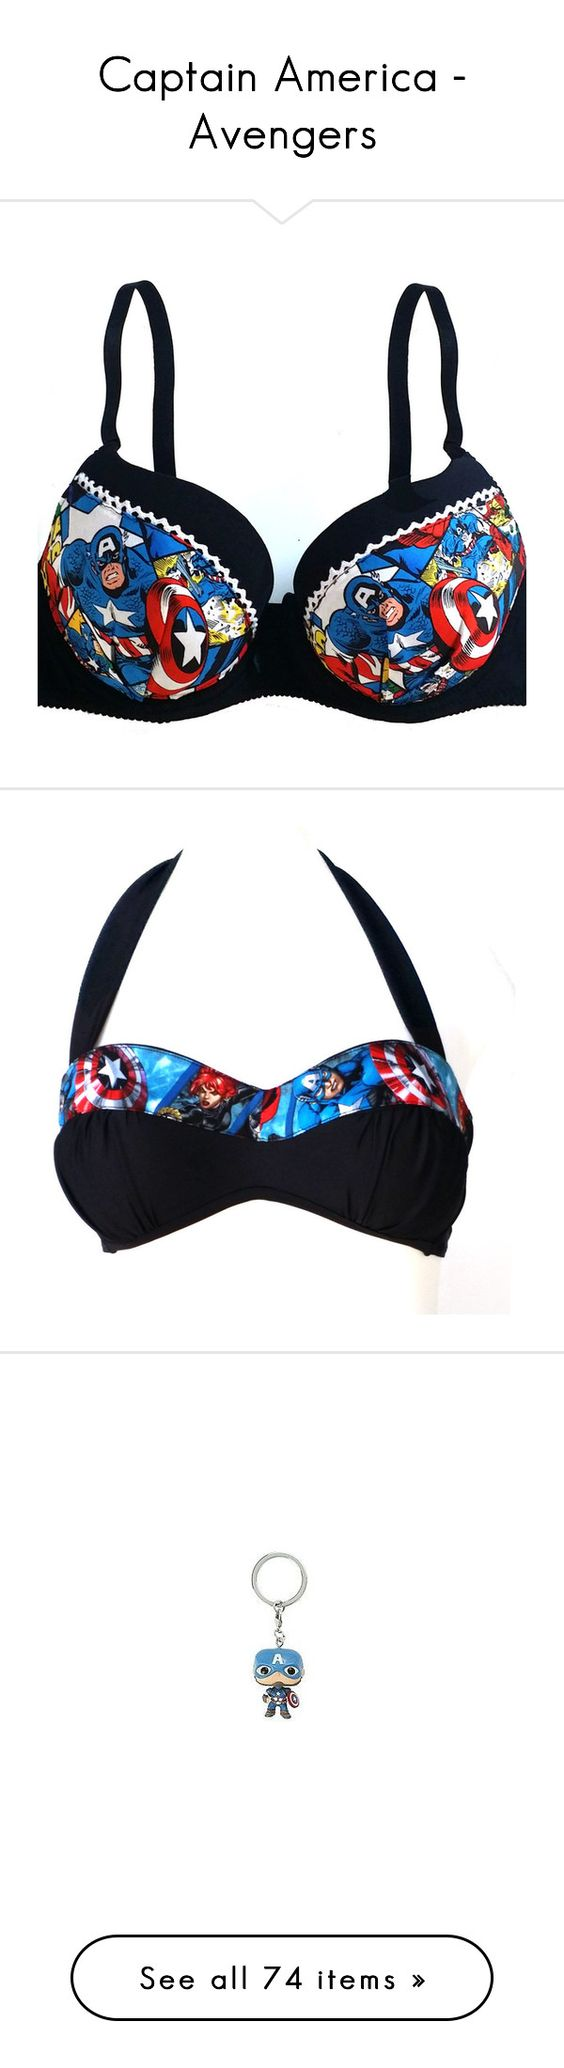 """""""Captain America - Avengers"""" by firenzed ❤ liked on Polyvore featuring intimates, bras, underwear, lingerie, bras and pantsu, undergarements, black, women's clothing, lace push up bra and sexy lingerie bras"""